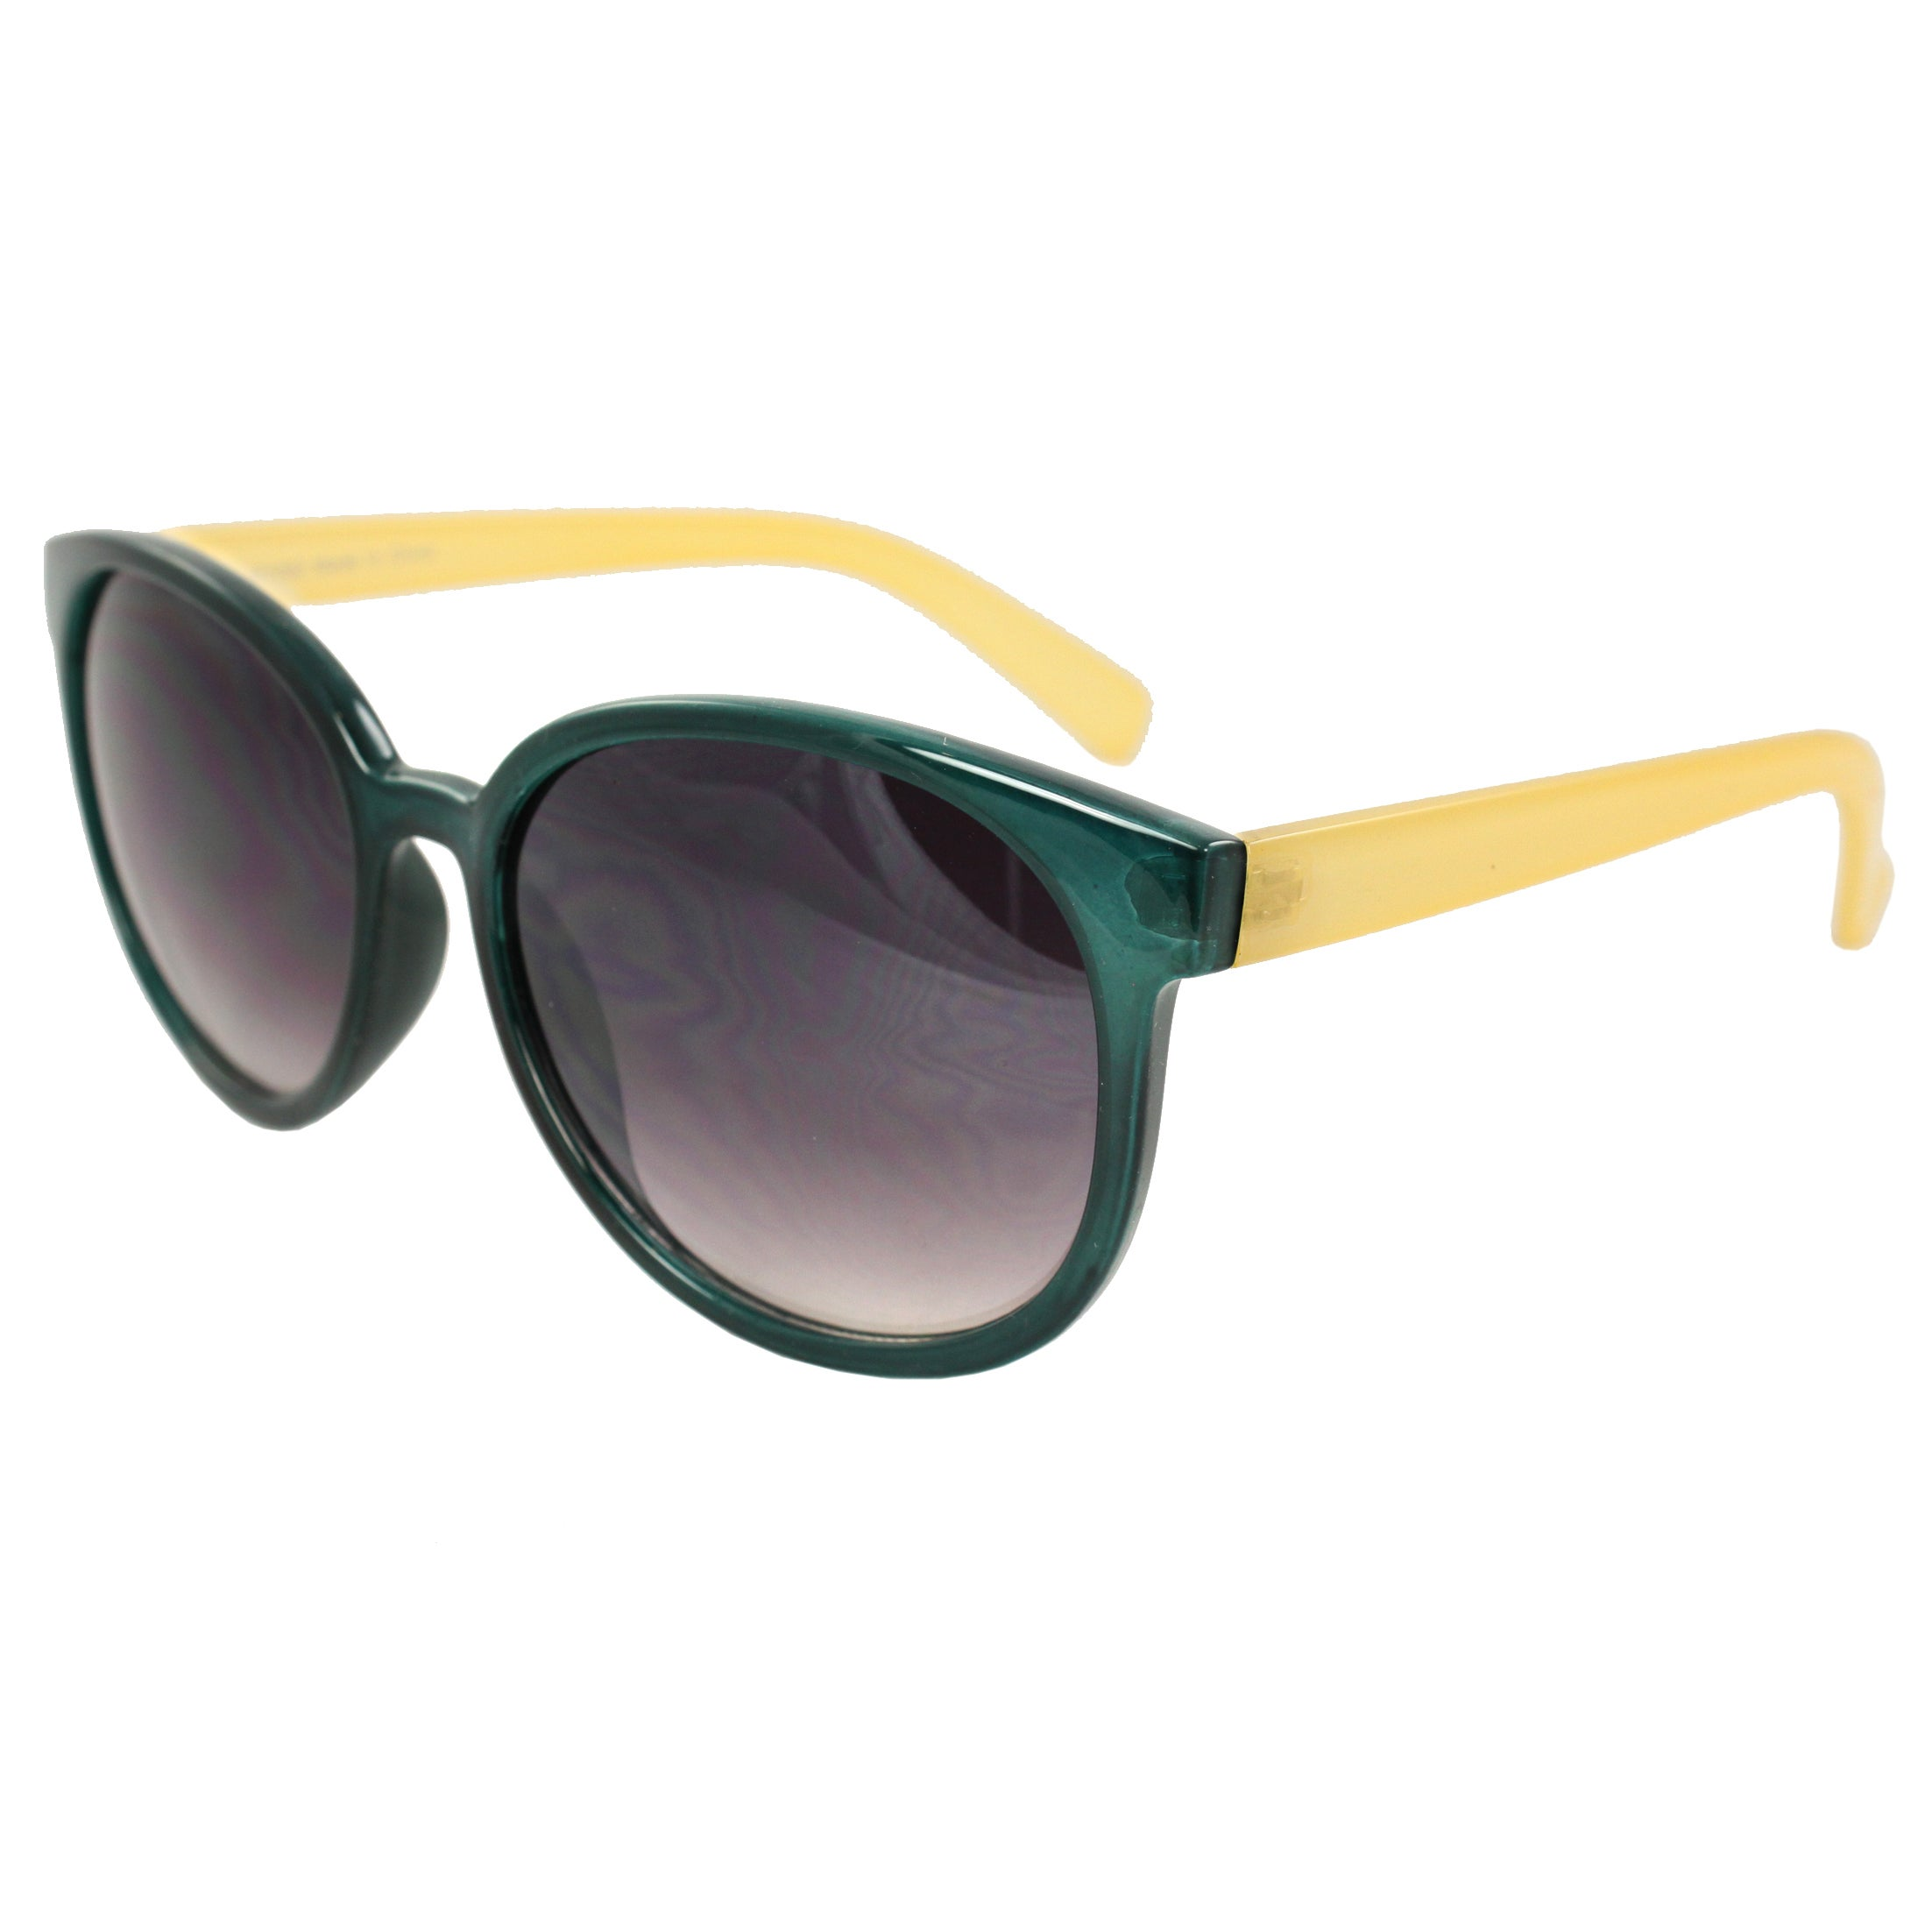 2156a5aafb3e Shop Women's Green/ Yellow Oval Fashion Sunglasses - Free Shipping On  Orders Over $45 - Overstock - 7025627